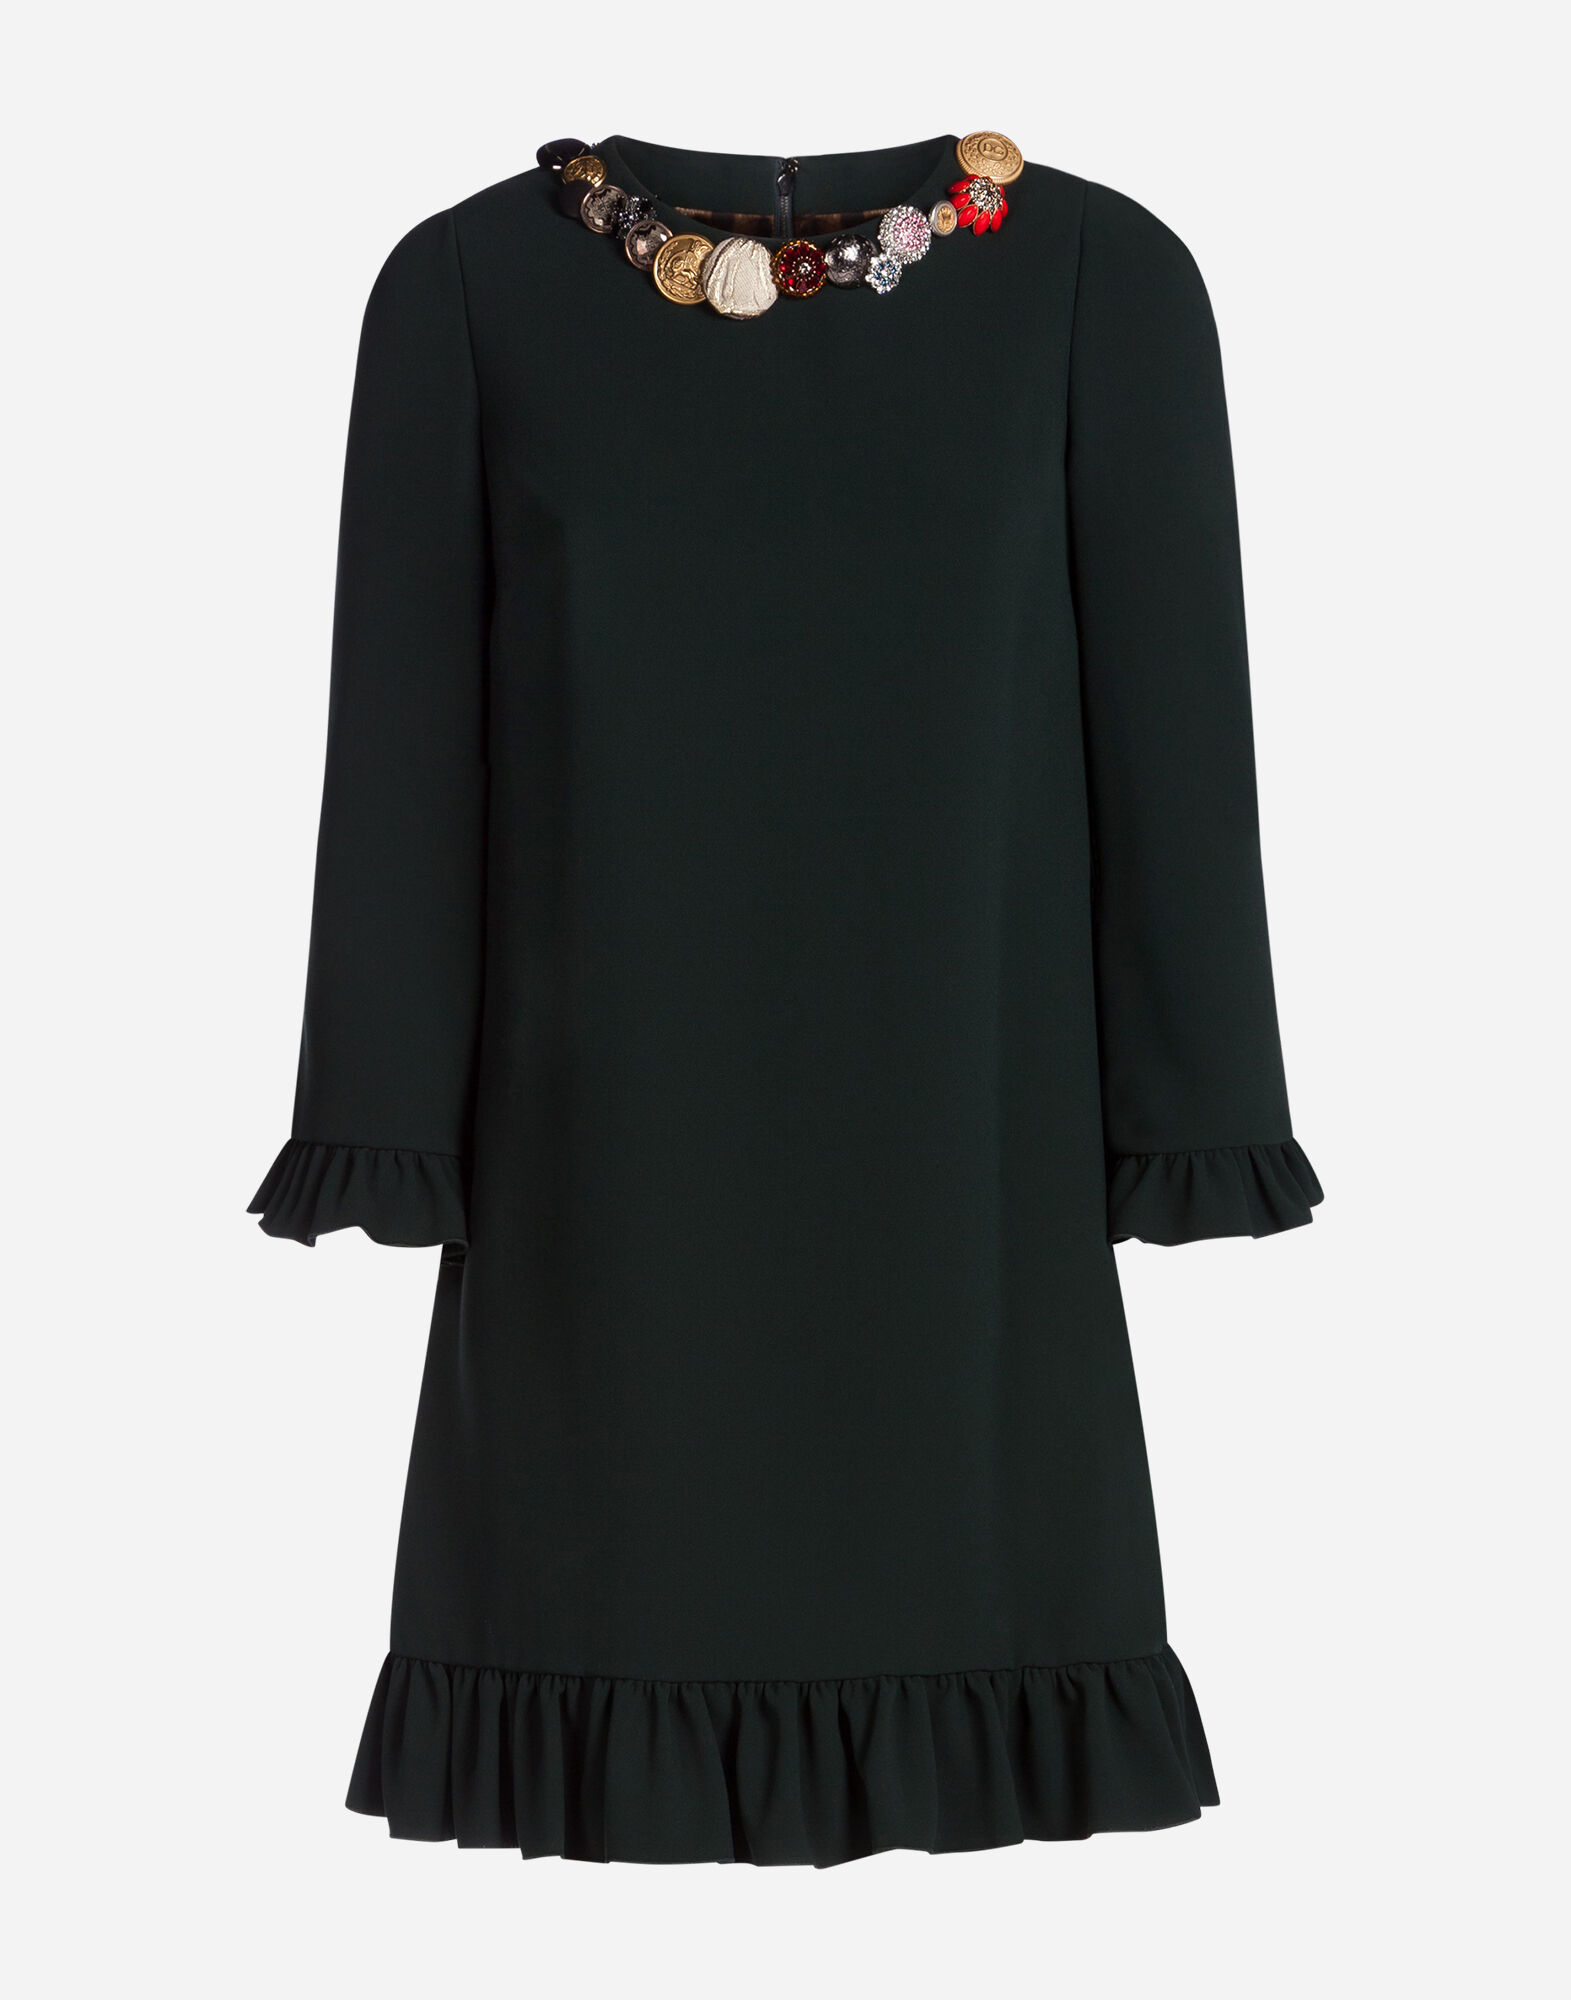 CADY DRESS WITH BEJEWELED BUTTONS